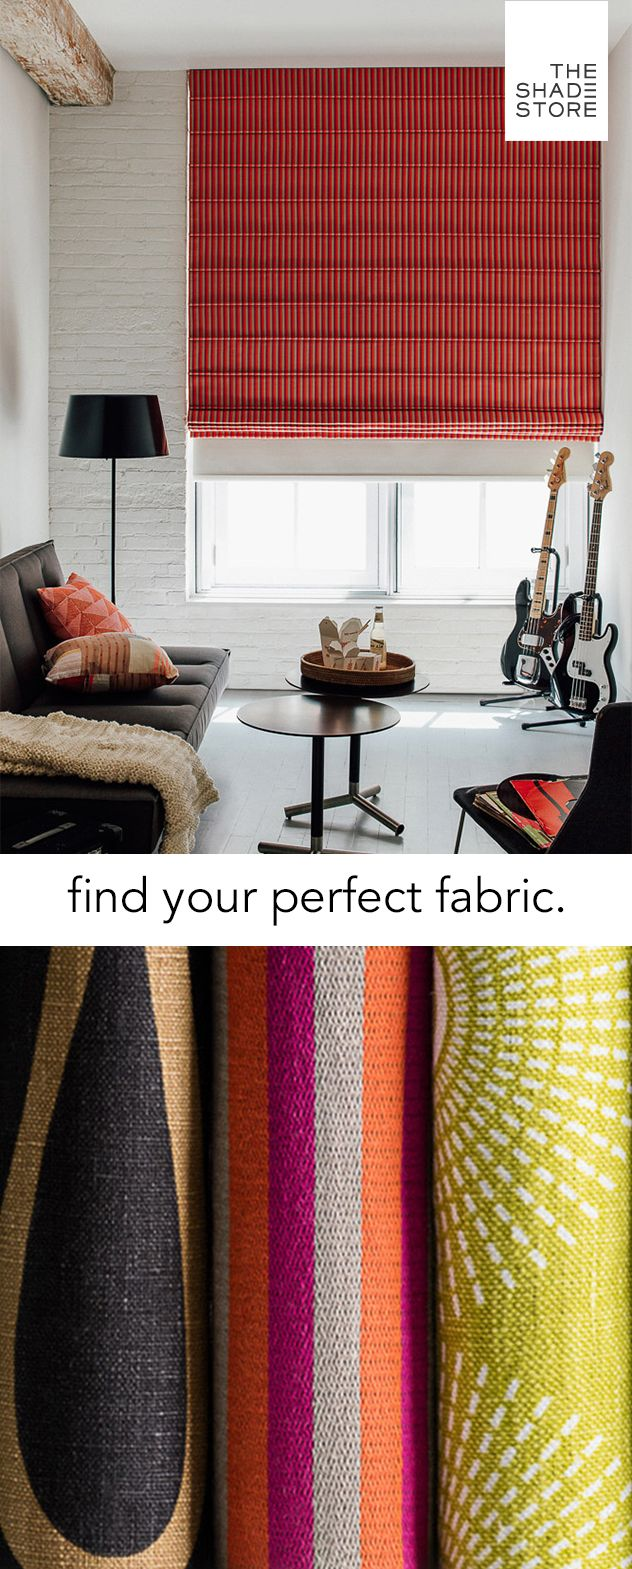 With 900+ materials, you're sure to find the perfect window treatment for your home. Order your free swatches today, and receive them in 1-3 business days.